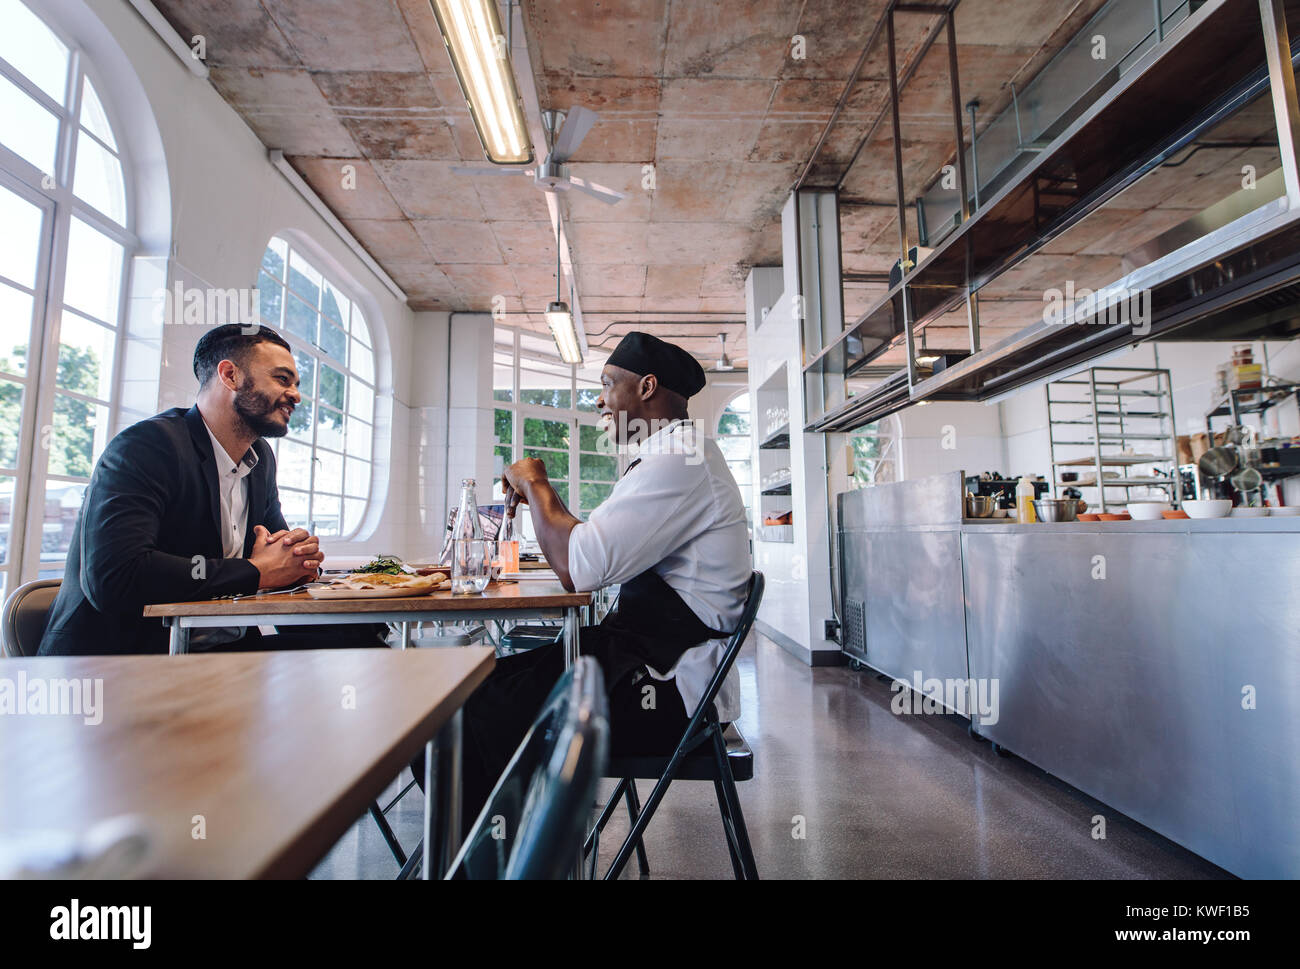 Restaurant manager talking with a professional chef. Cafe owner and cook sitting at a table and talking. - Stock Image